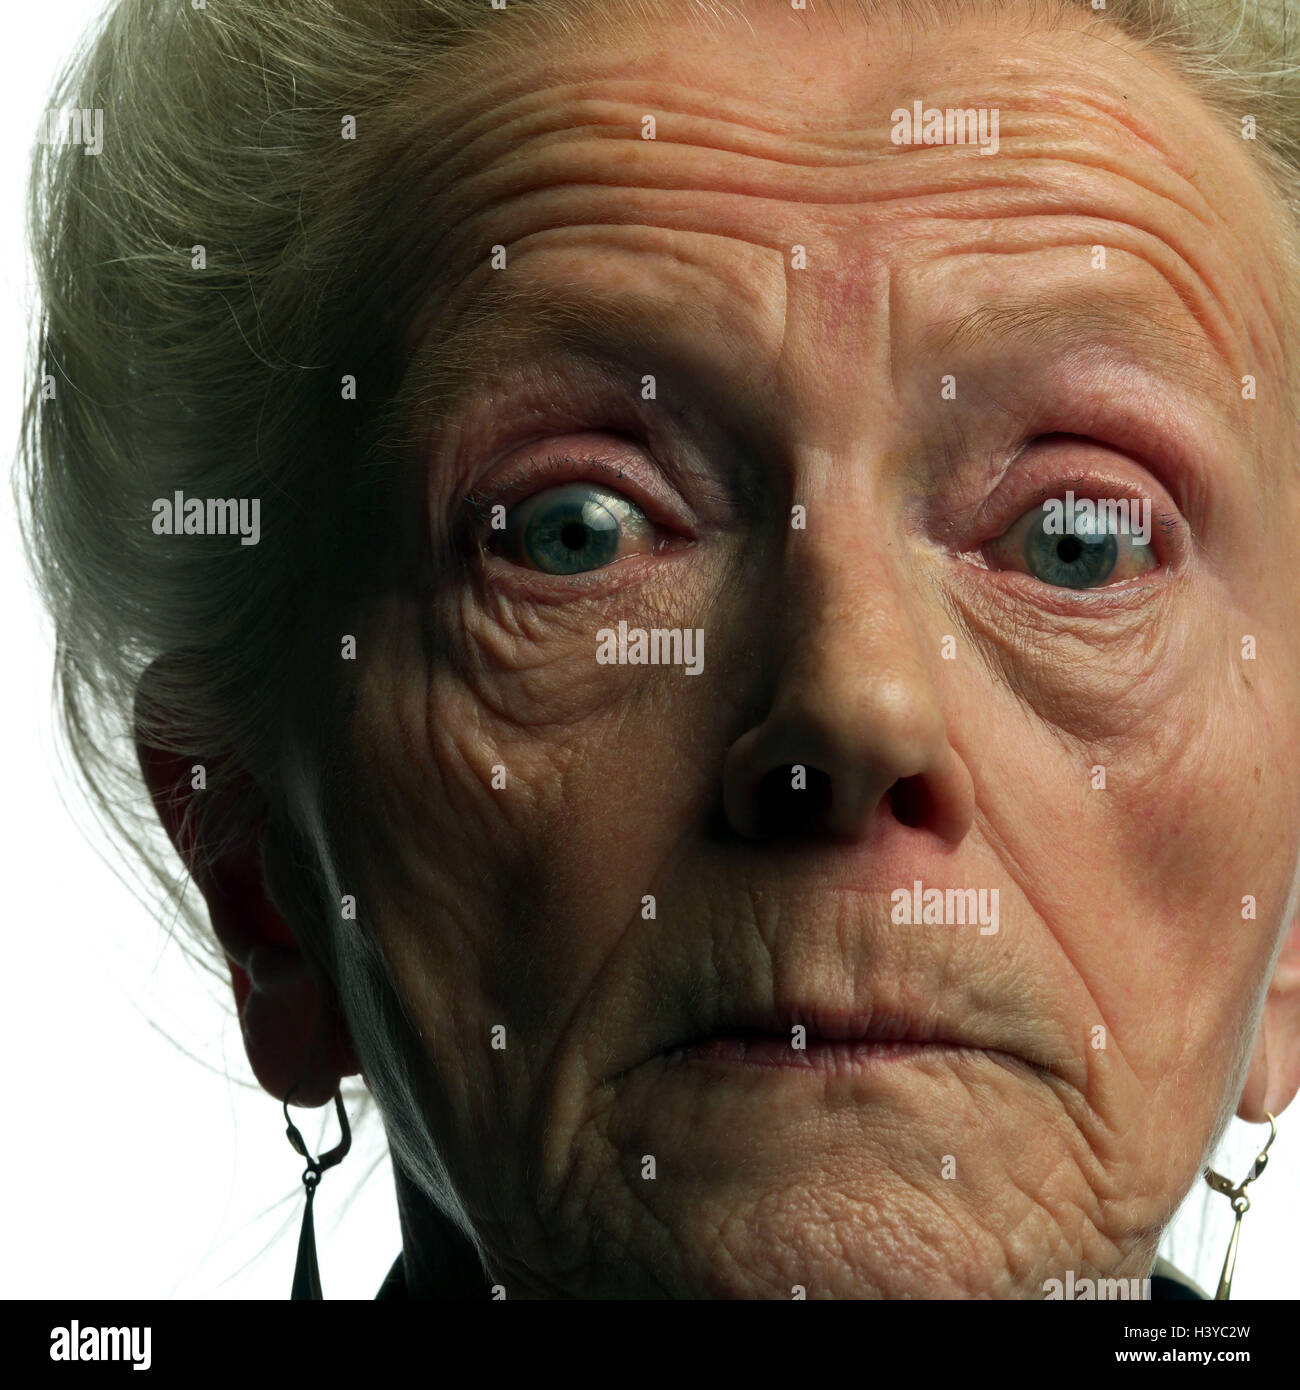 Senior, facial play, fright, surprise, portrait, very close, old person, pensioner, woman, old, shell, creased, - Stock Image